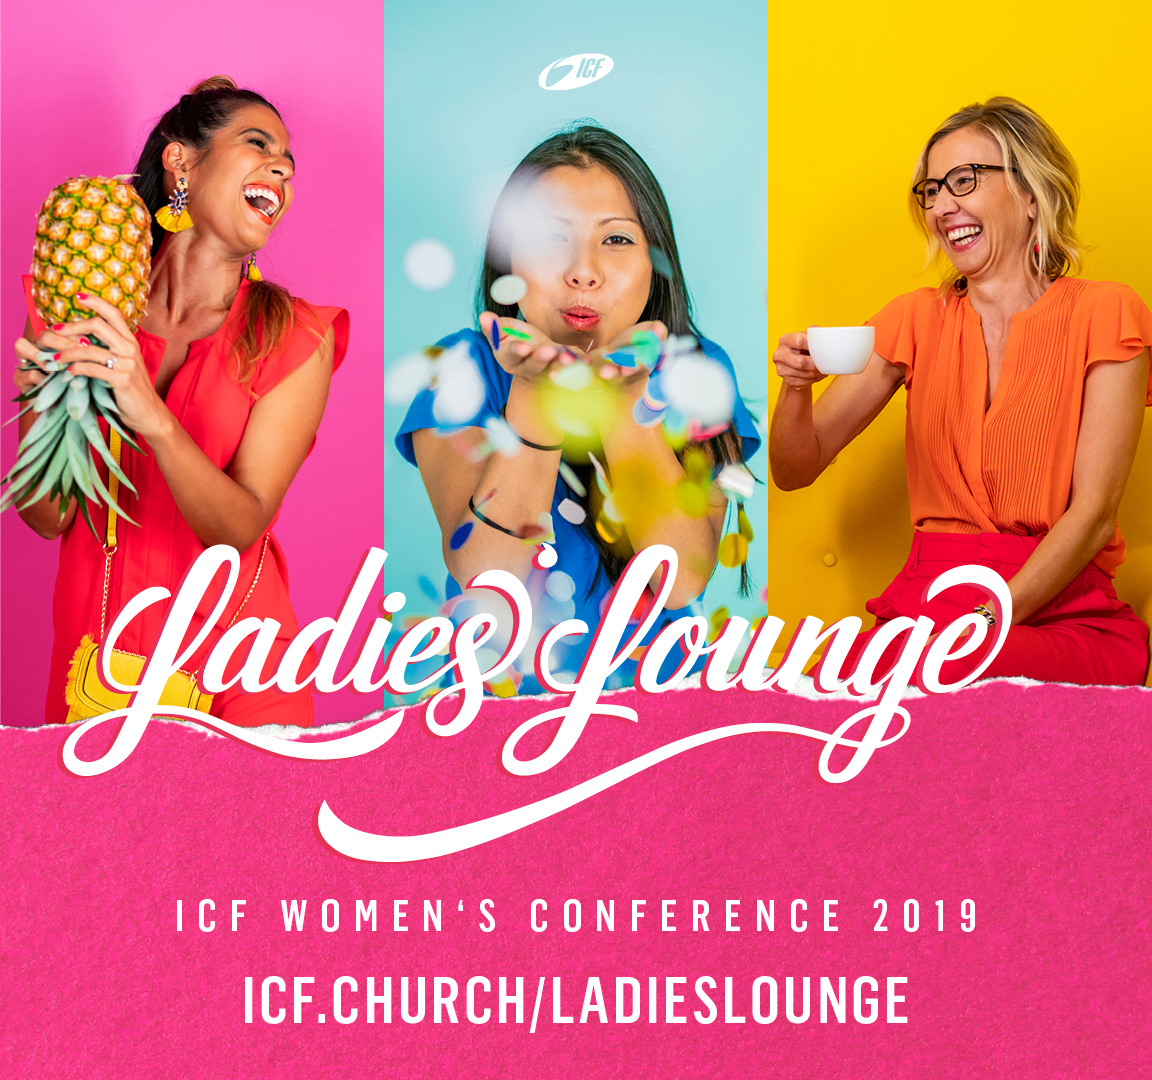 ICF Ladies Lounge 2019